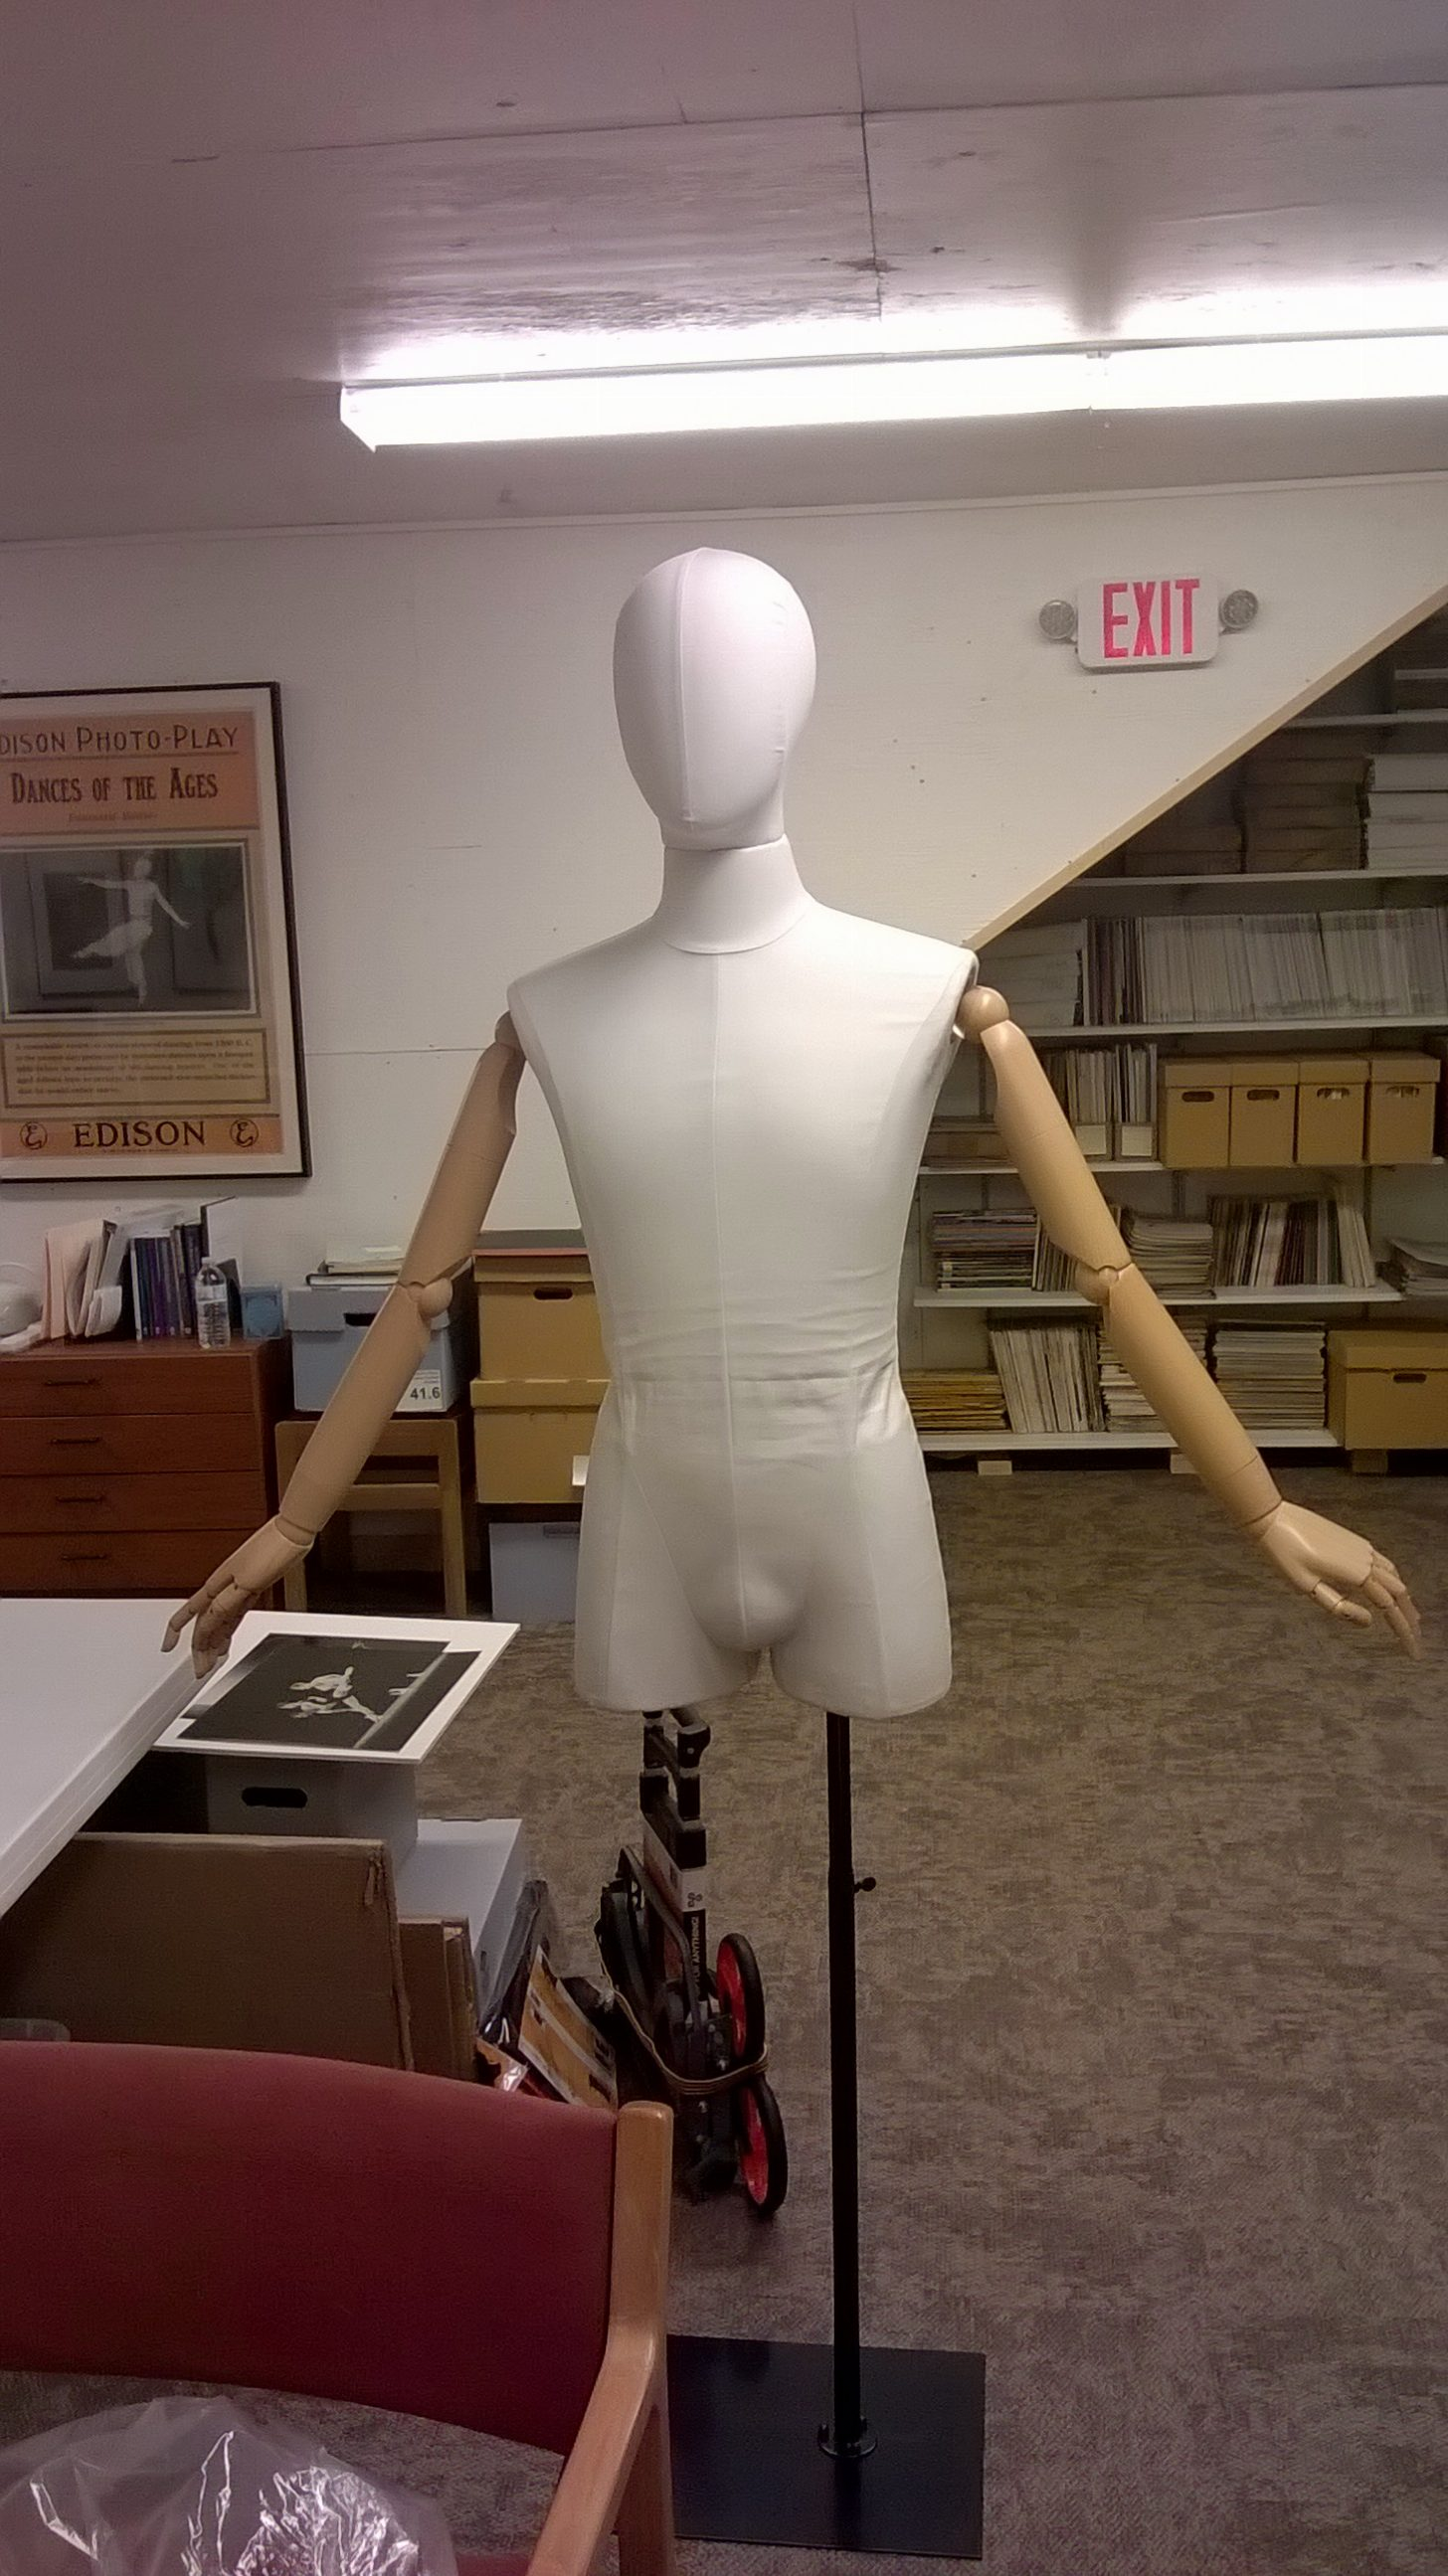 The new mannequin